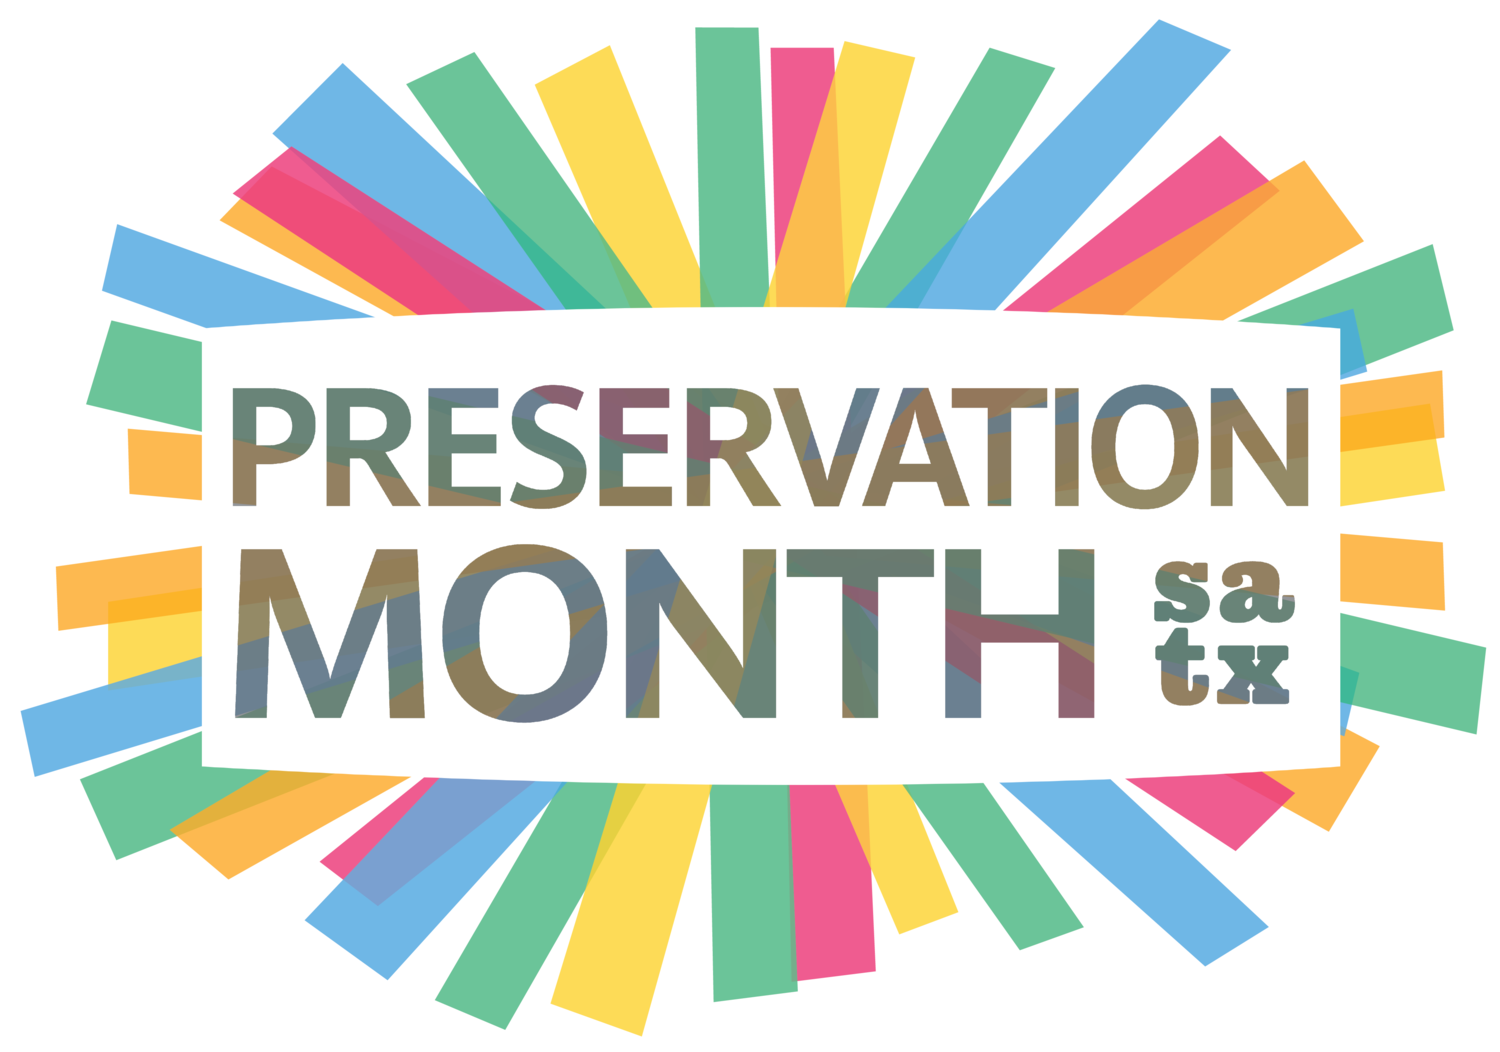 San Antonio Preservation Month 2019 - A celebration of culture and heritage!